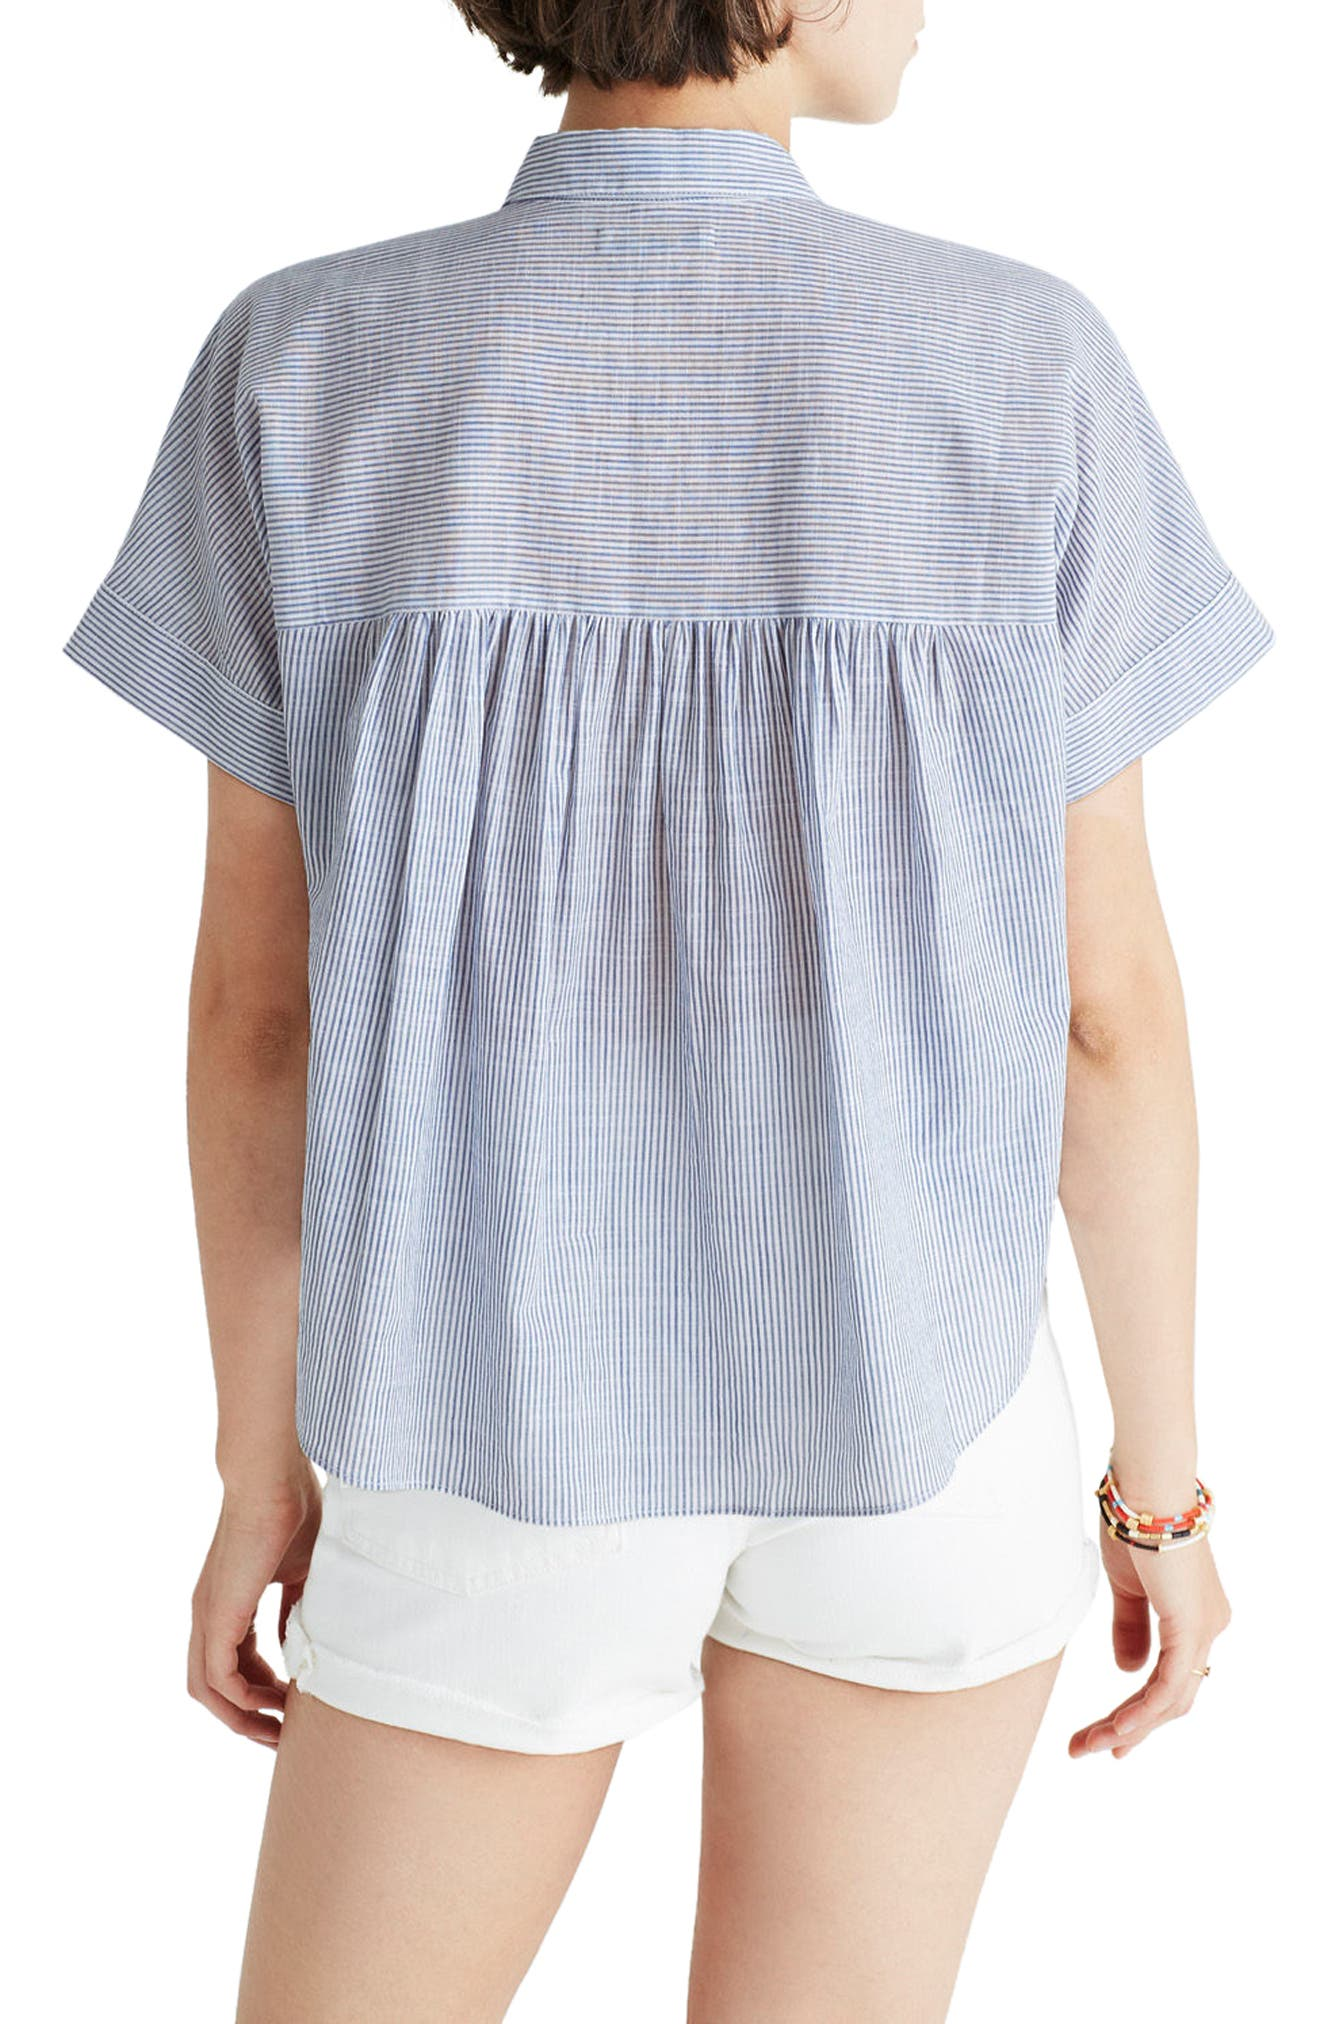 MADEWELL,                             Embroidered Hilltop Shirt,                             Alternate thumbnail 2, color,                             400